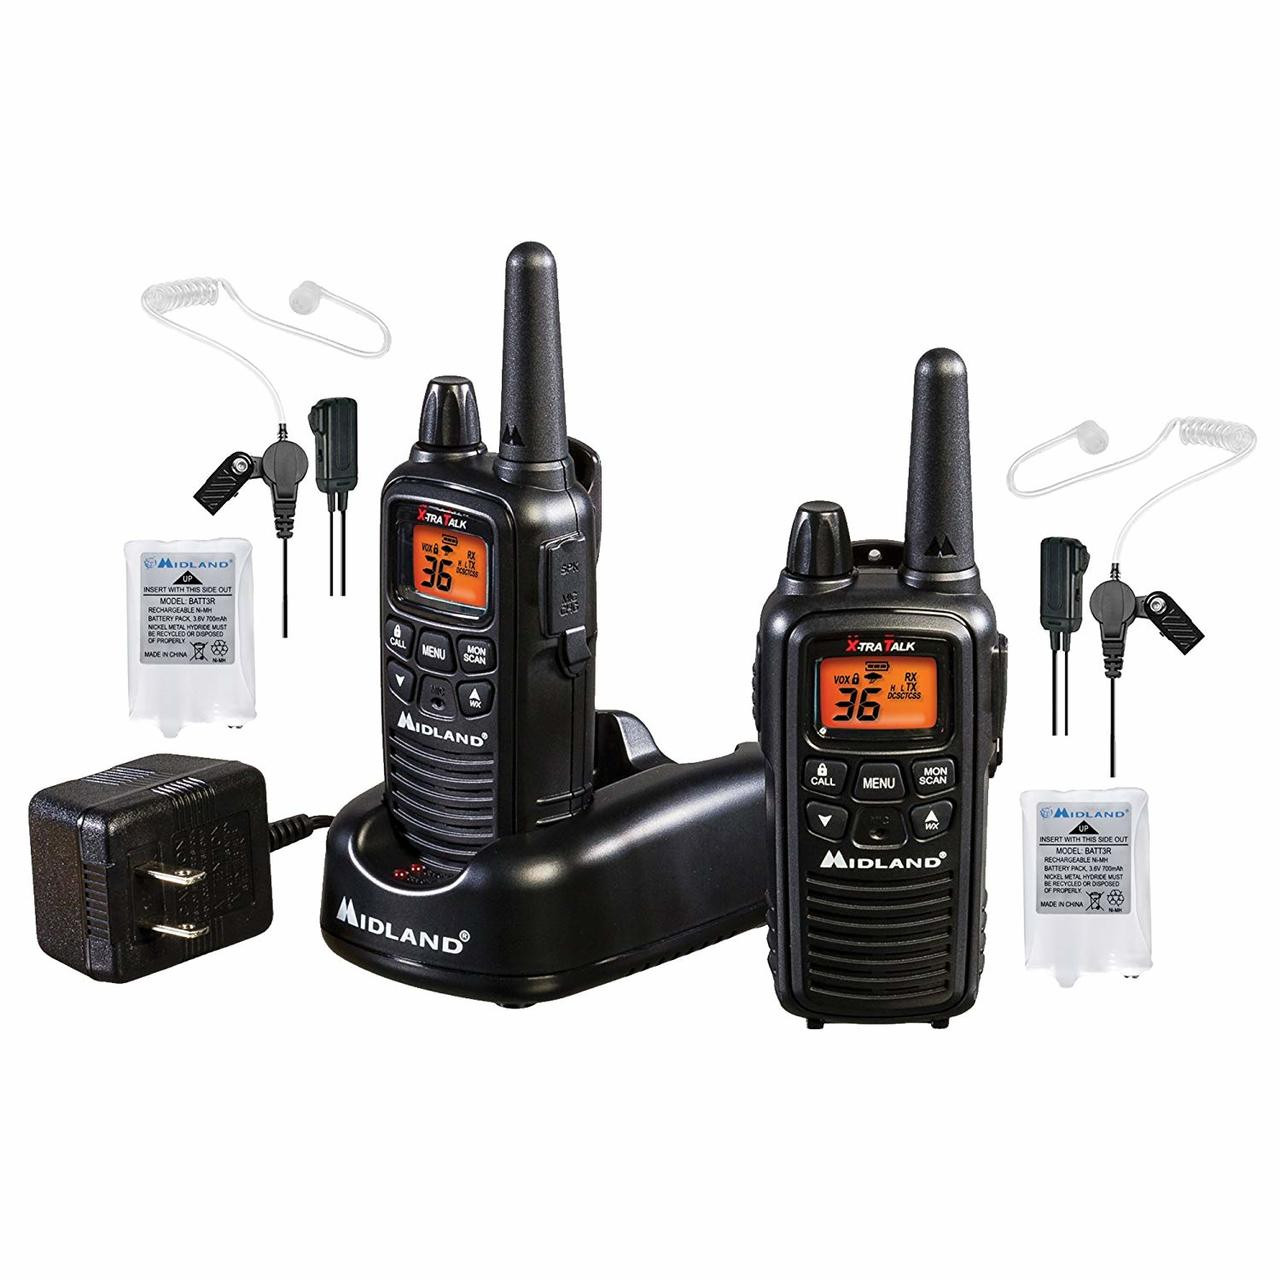 Midland LXT600BB FRS Business Two Way Radio Bundle with Charger and Headsets.   3 Year warranty on the Midland LXT600BB.